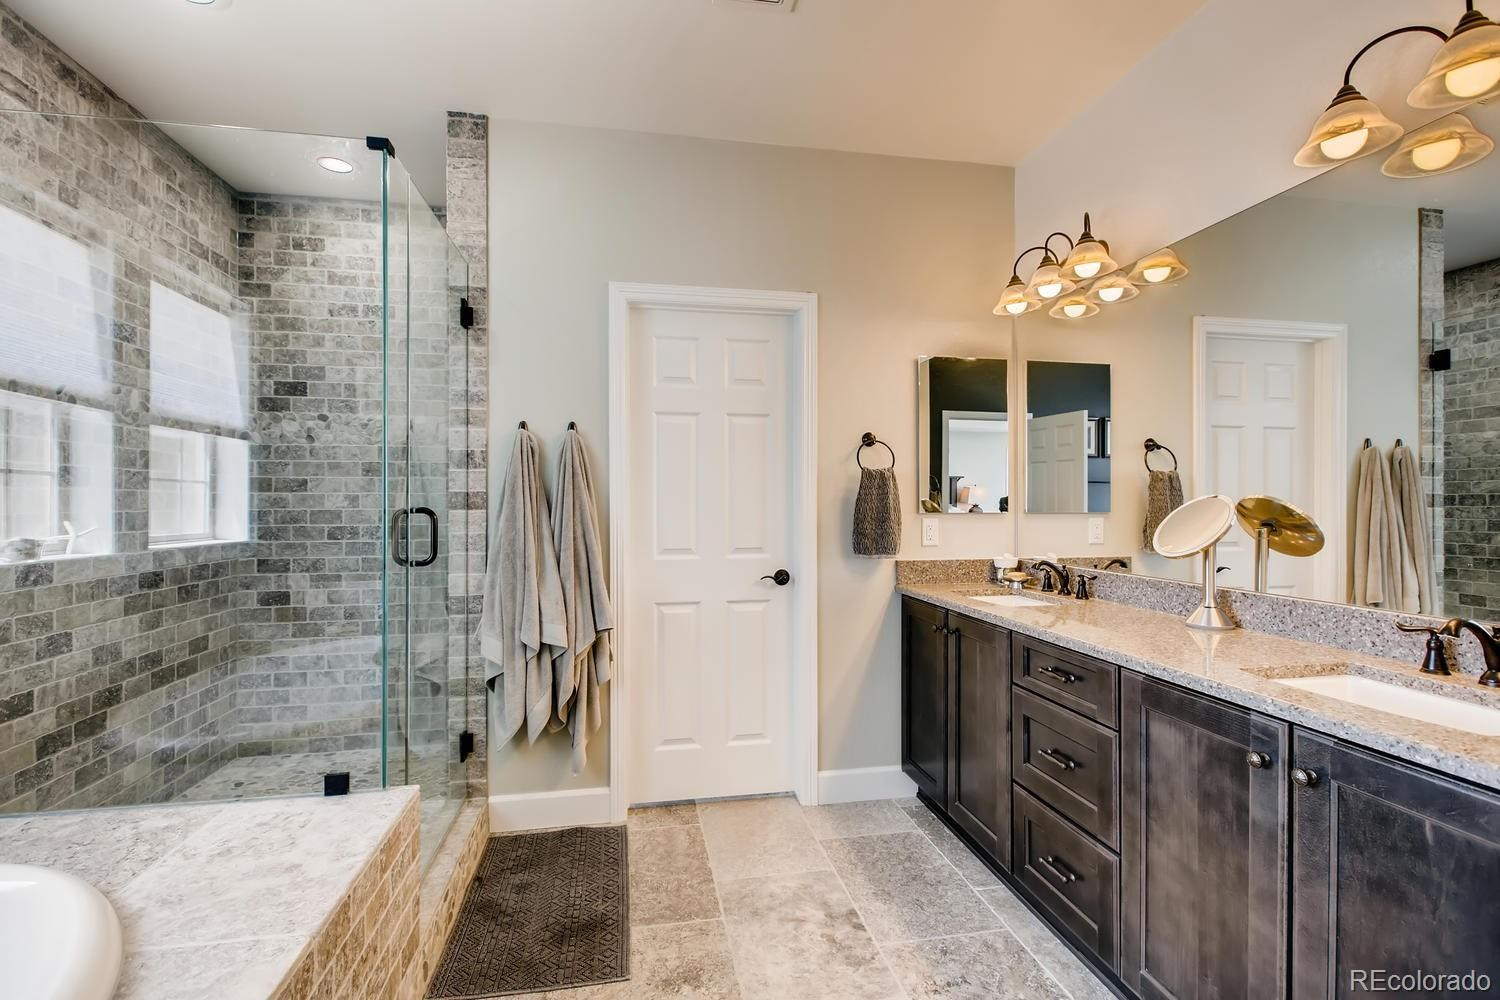 MLS# 5689224 - 18 - 10754 Greycliffe Drive, Highlands Ranch, CO 80126